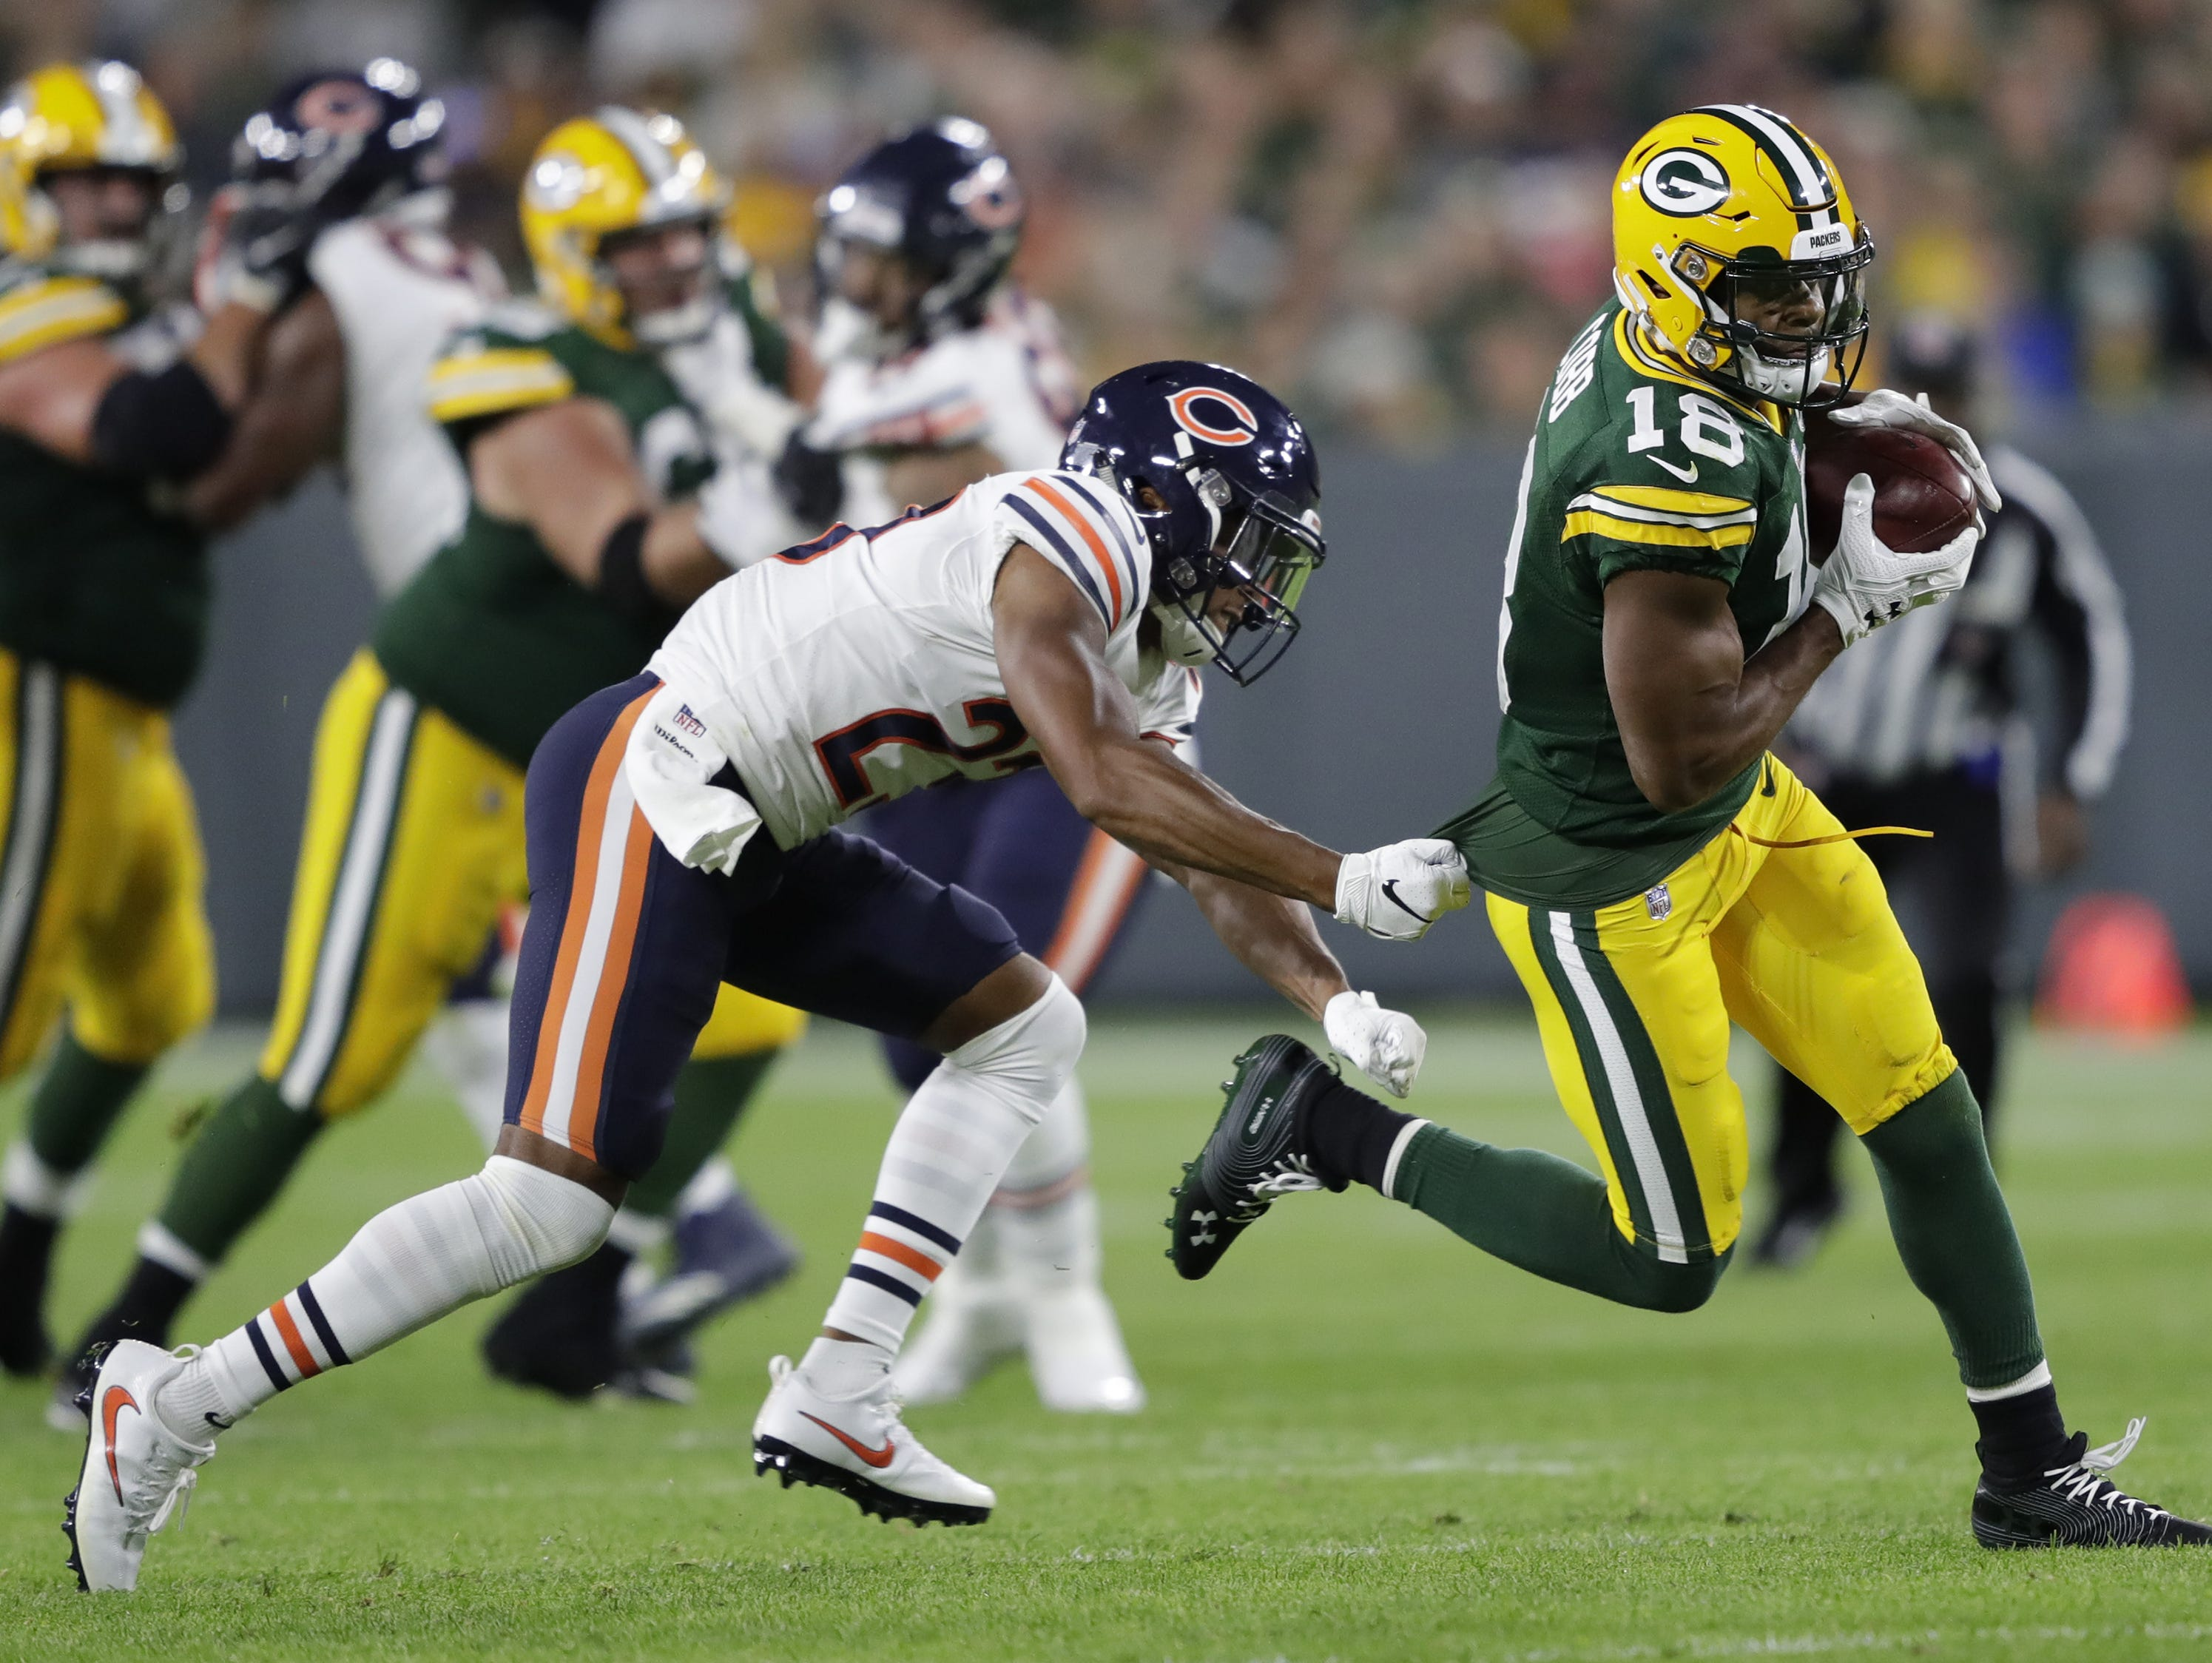 Green Bay Packers wide receiver Randall Cobb (18) runs for a first down against Chicago Bears defensive back Kyle Fuller (23) in the second half Sunday, Sept. 9, 2018, at Lambeau Field in Green Bay, Wis.